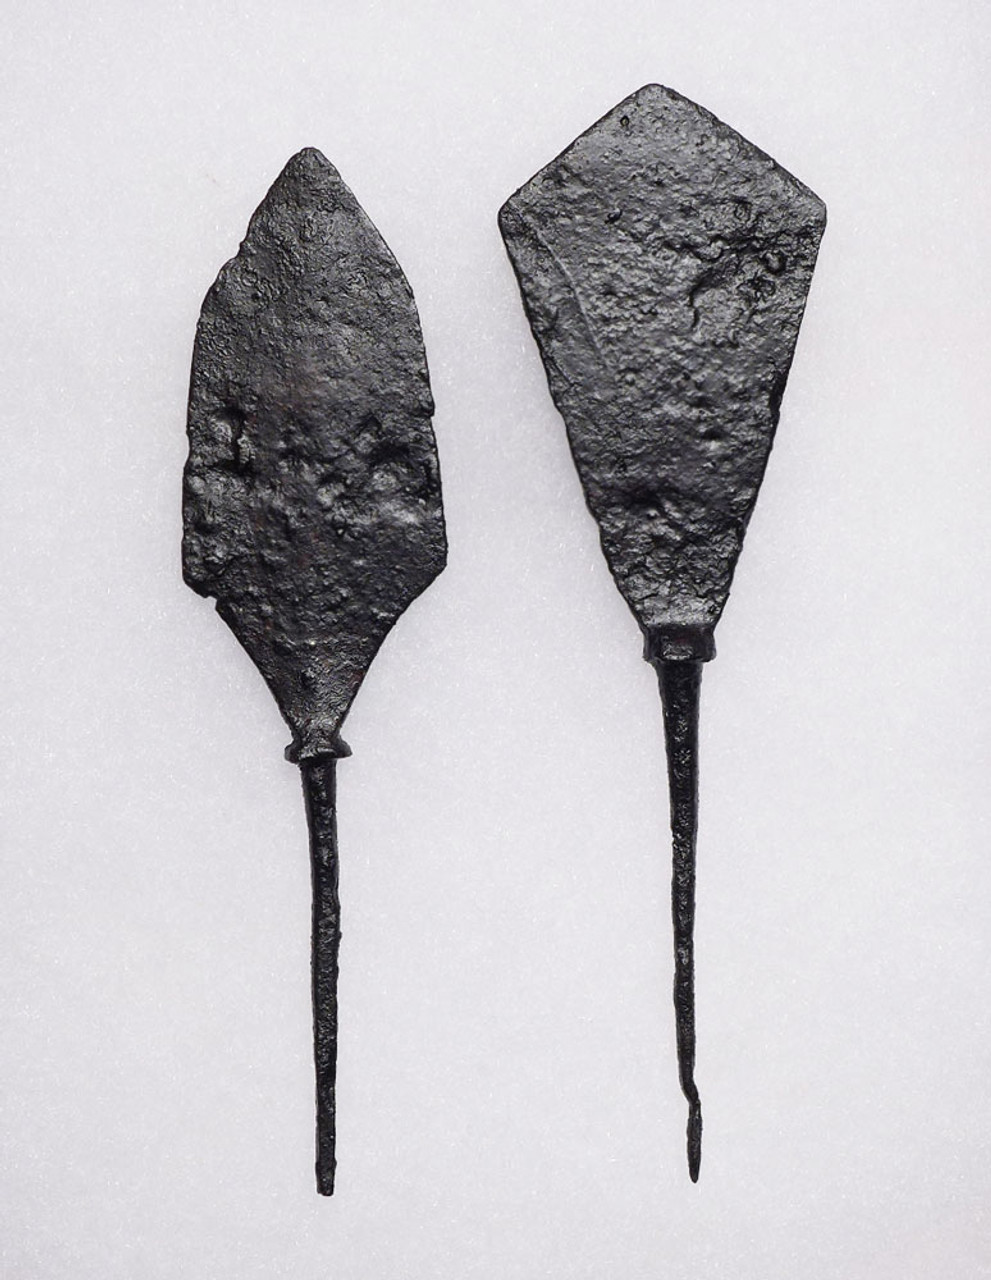 TWO LARGE ANCIENT ROMAN BYZANTINE ARROWHEADS FROM A SUPPORTING LINE ARCHER *R222